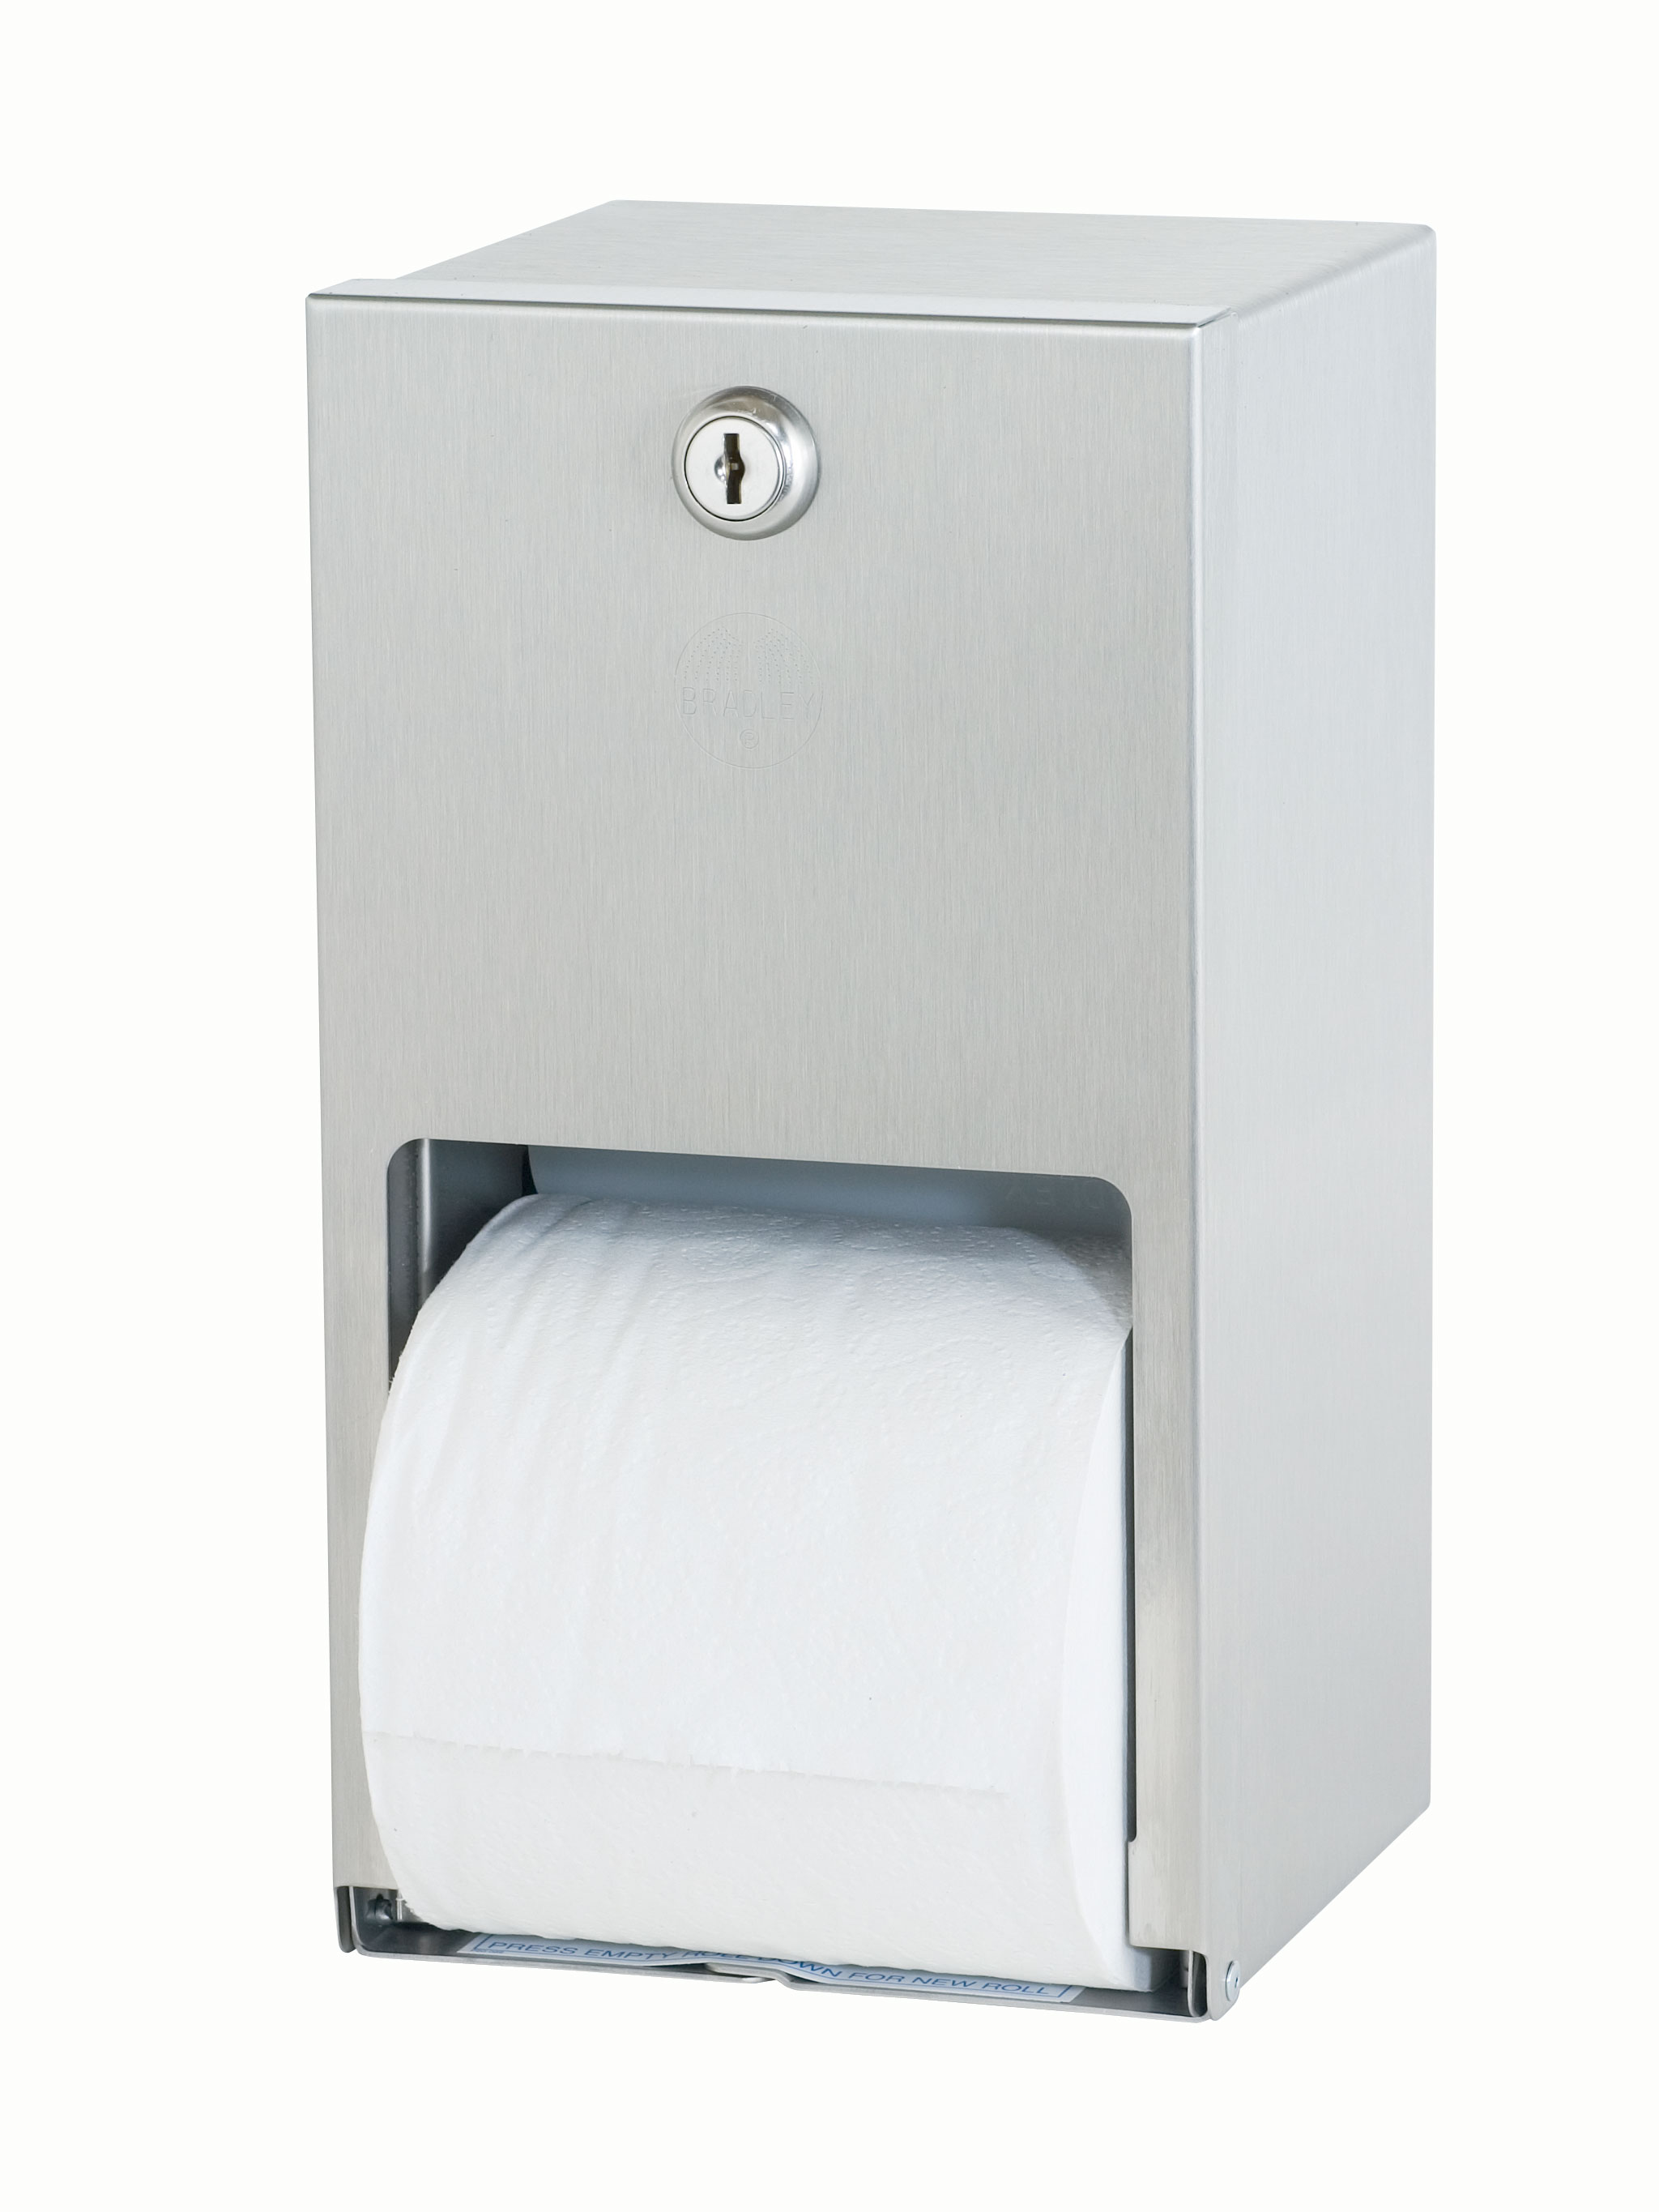 Bradley bathroom accessories - Surface Mounted Stainless Steel Toilet Tissue Dispenser